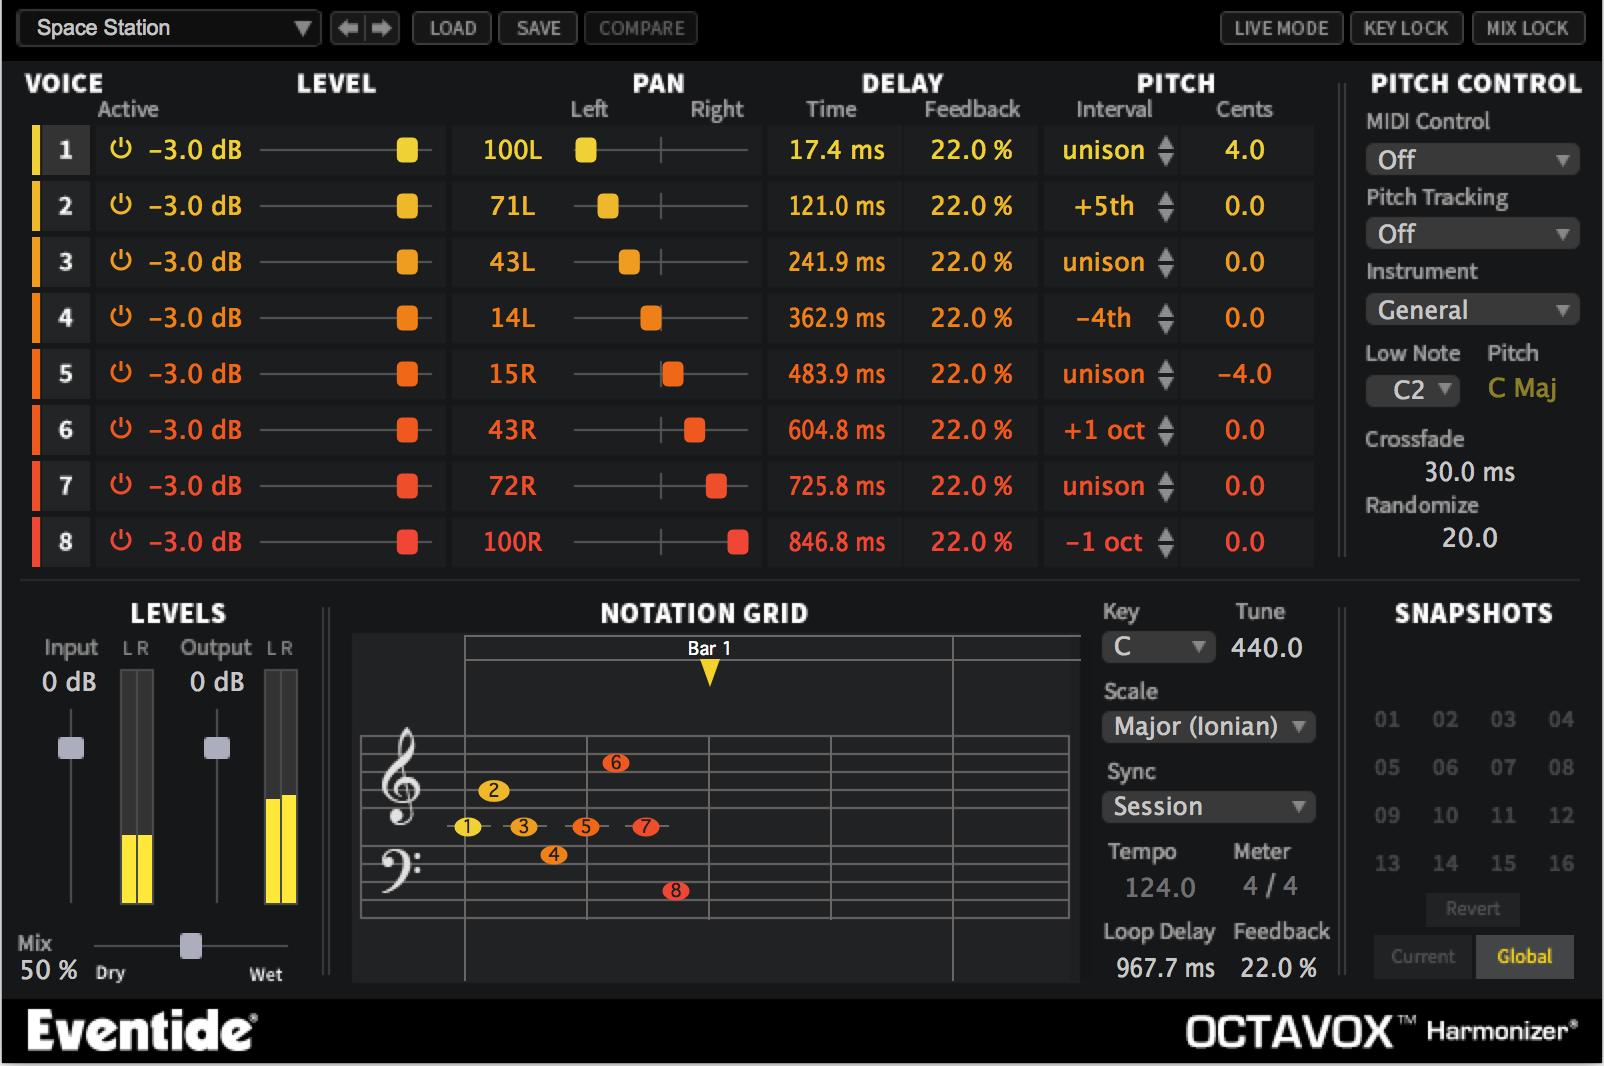 Octavox 8 Voice Diatonic Pitch Shifting with MIDI